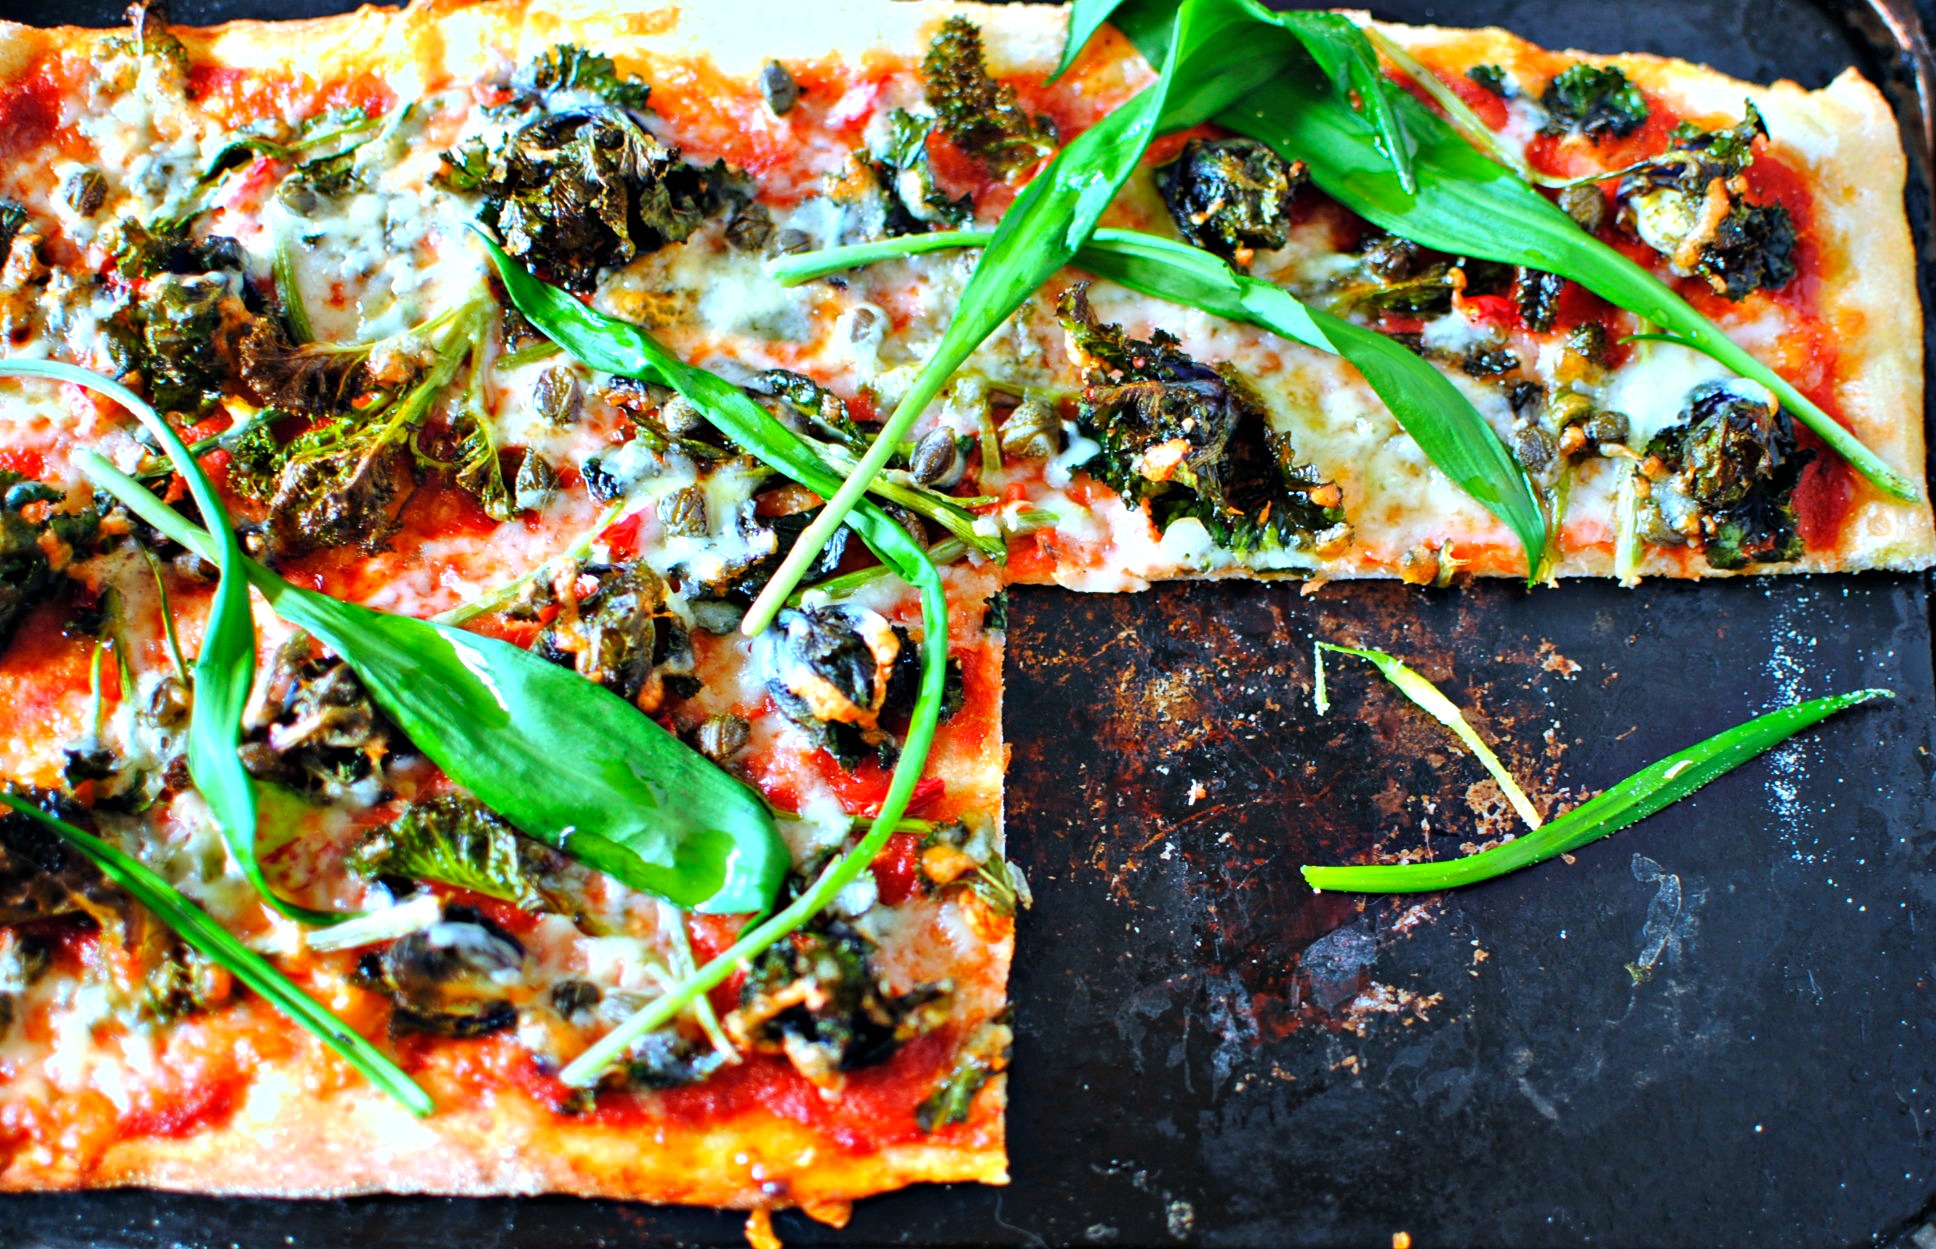 3 easy wild garlic recipes pizza pasta and pesto food to glow wild garlic pizza with kale tops capers and chilli by food to glow forumfinder Gallery